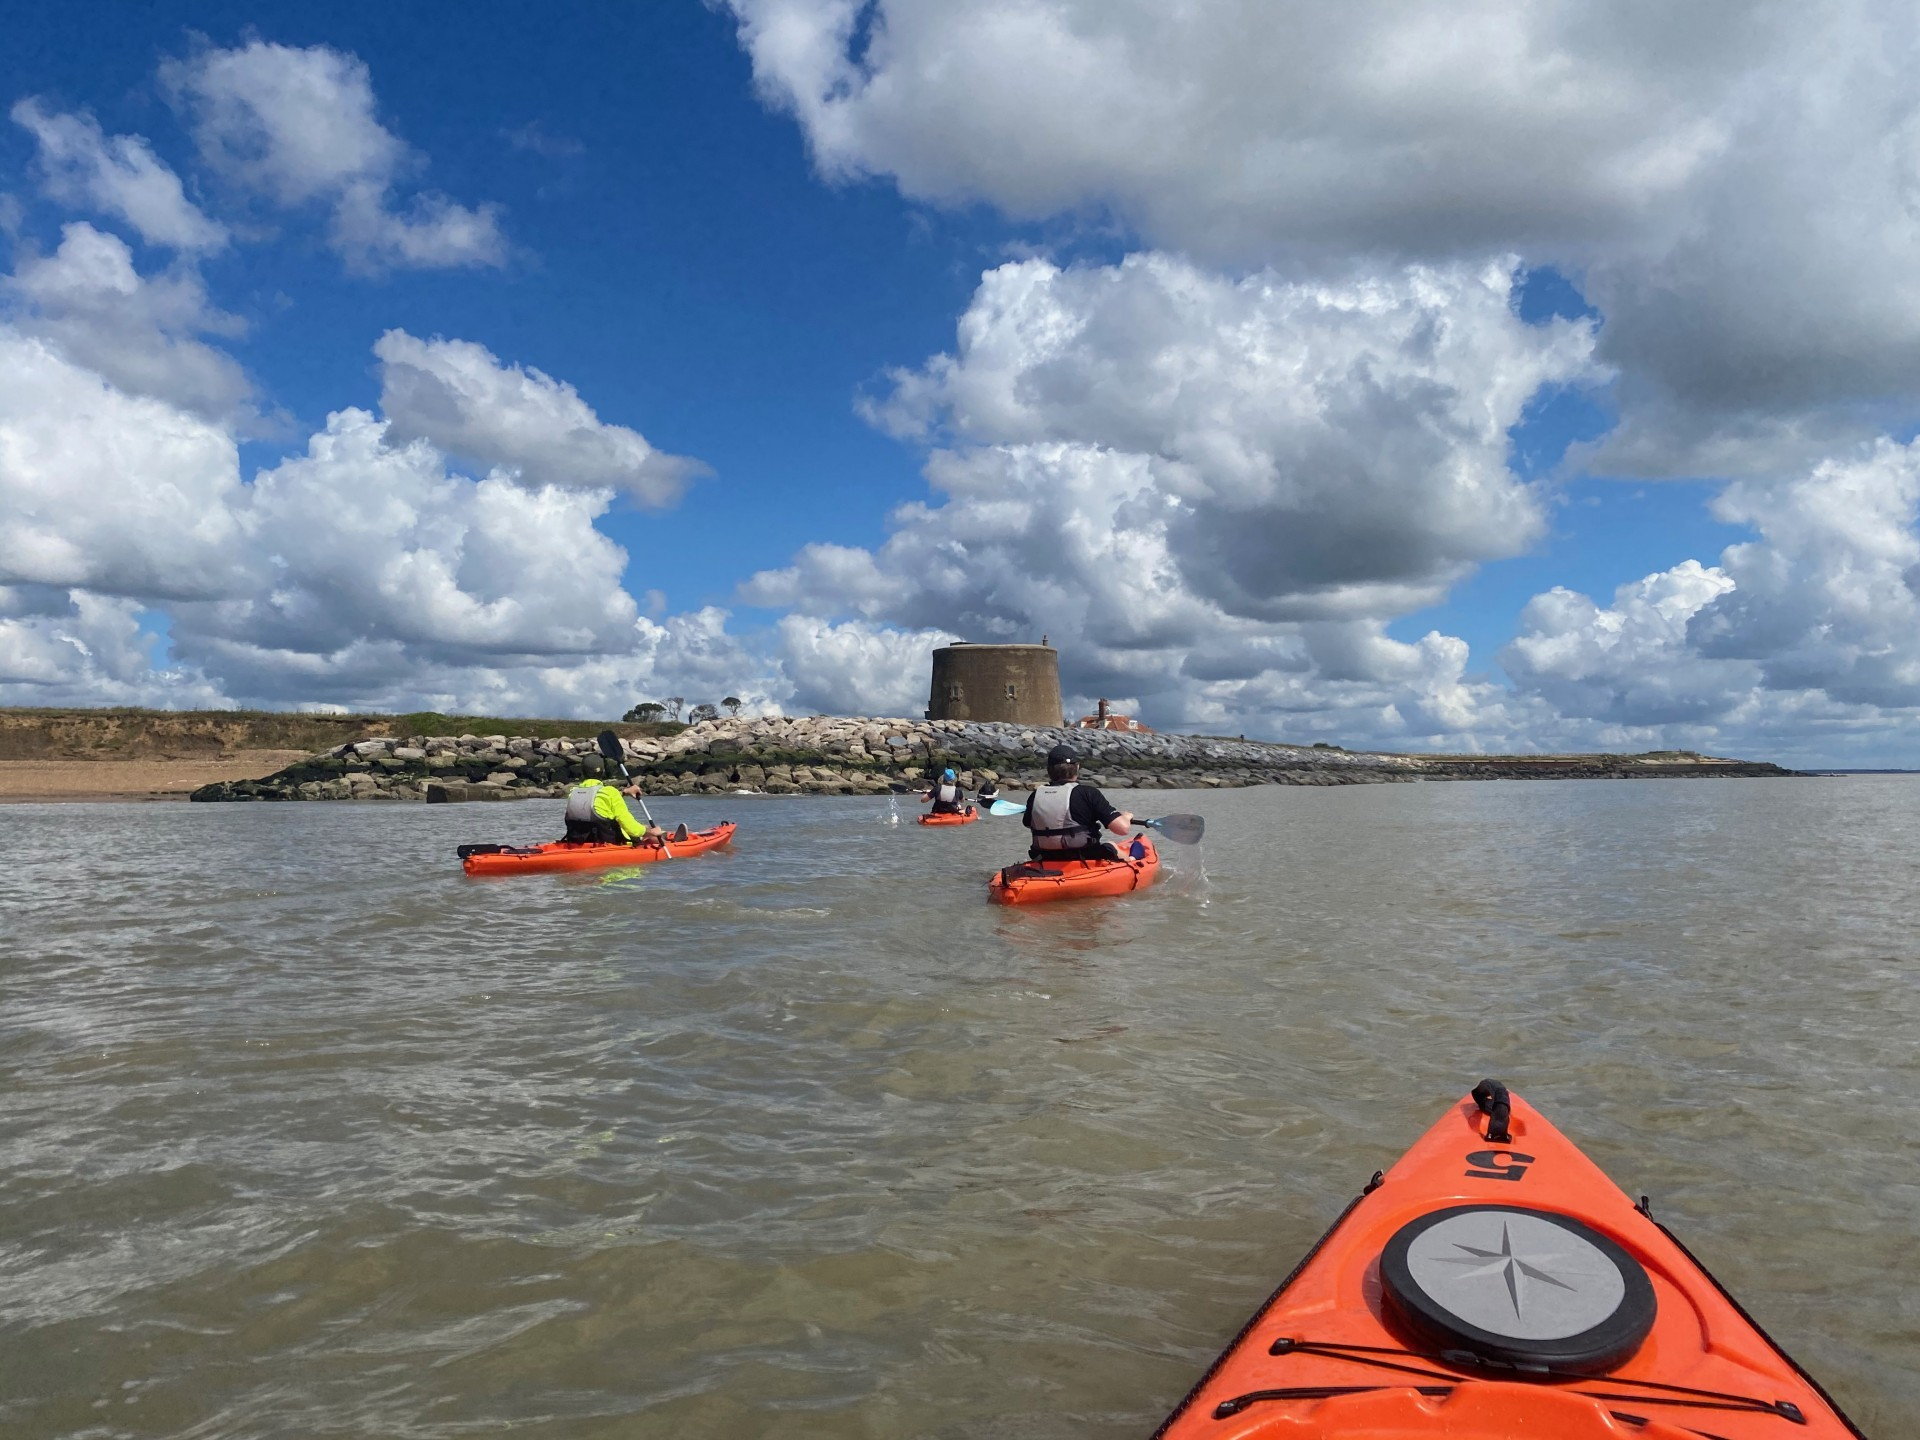 Kayakers on the water on a beginner kayaking and wild camping trip in Suffolk